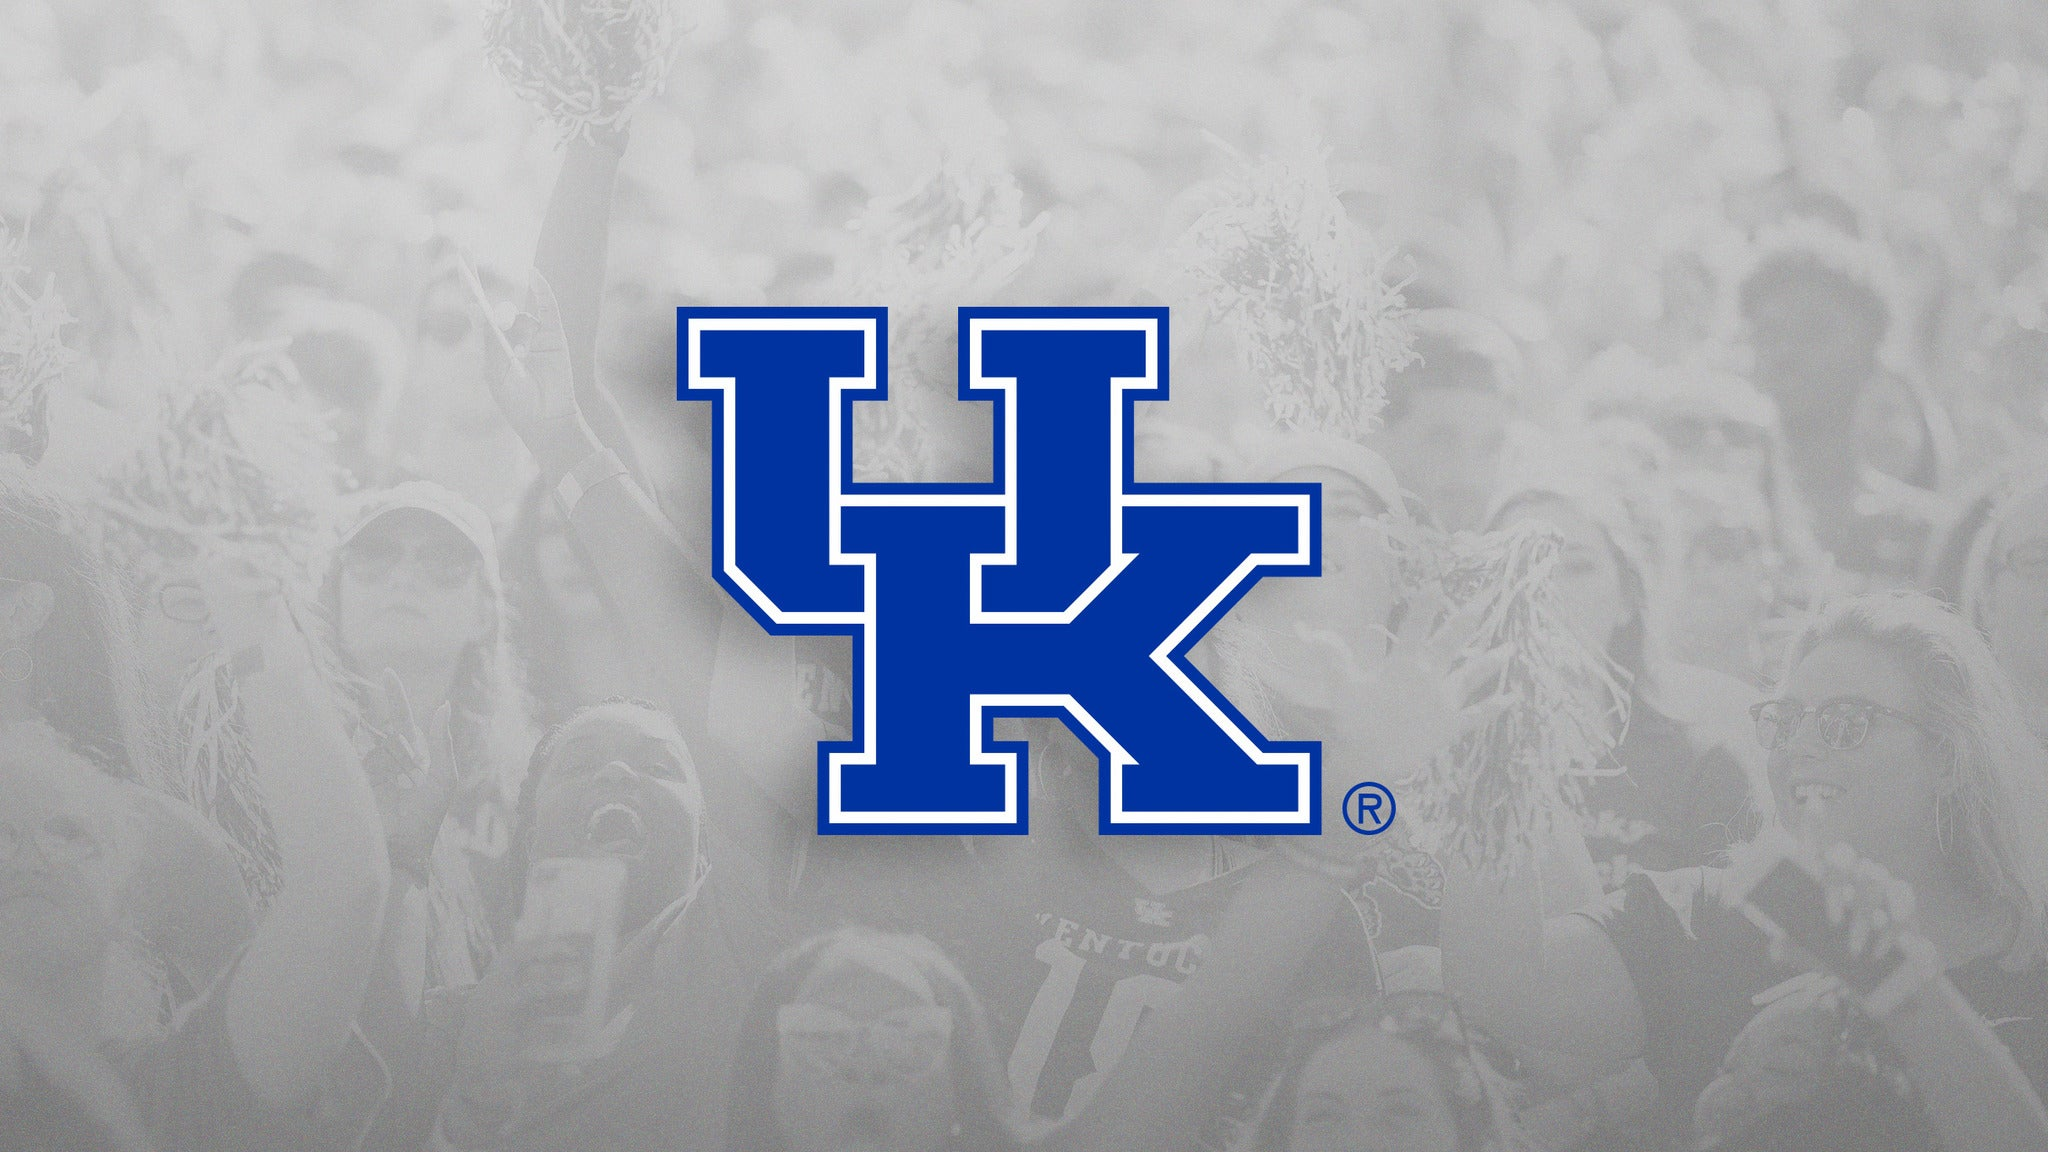 Purchase Citrus Bowl Tickets through UK at Velvet Lounge